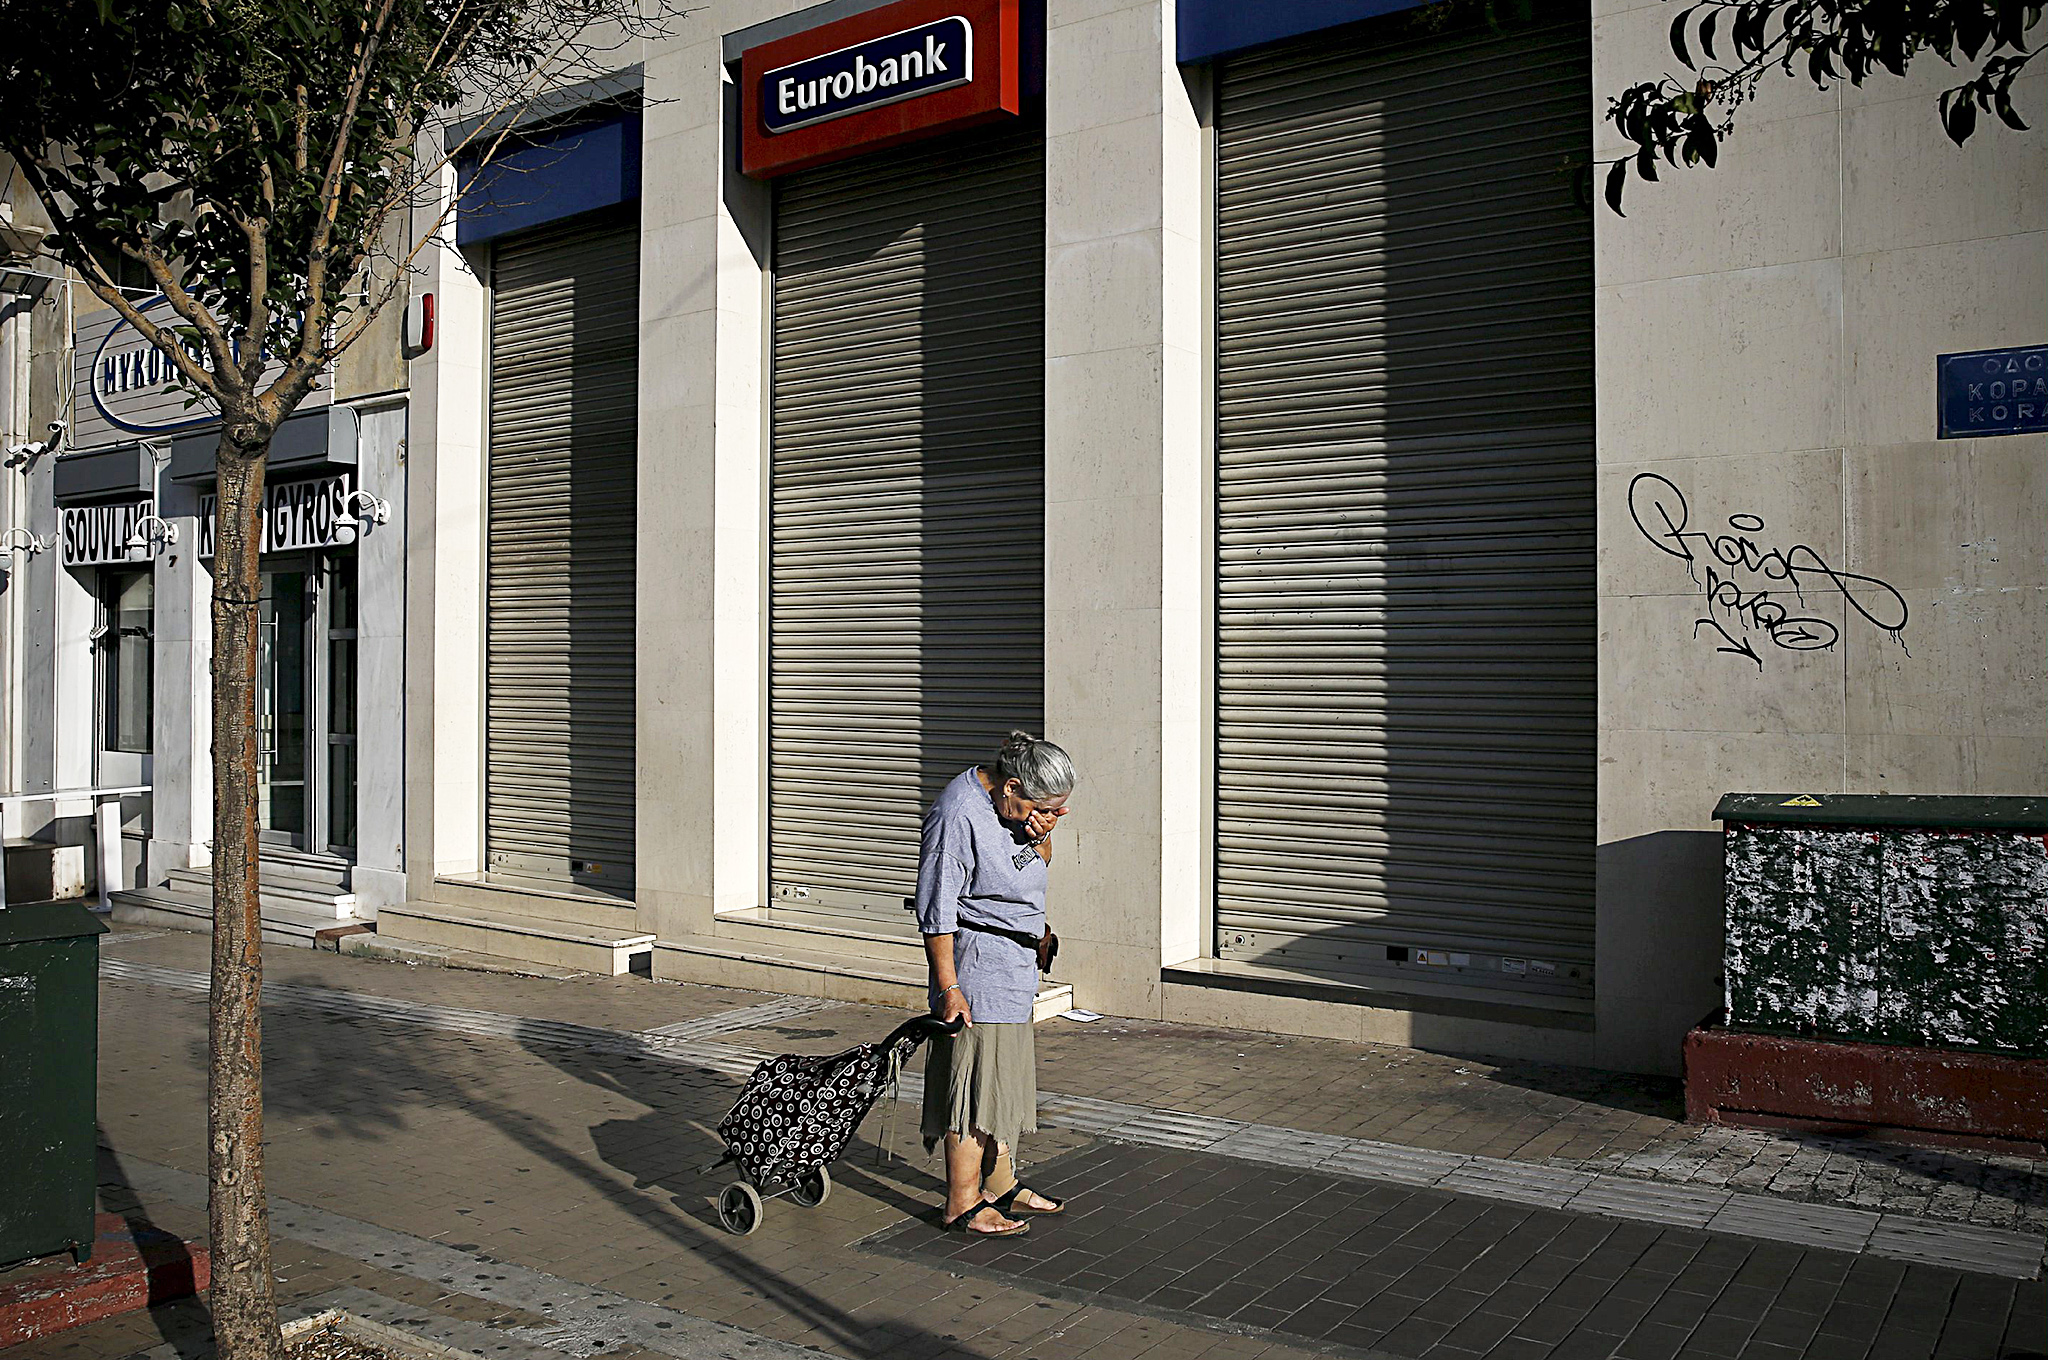 "A woman pulling a shopping cart reacts outside a closed Eurobank branch in Athens...ATTENTION EDITORS - REUTERS PICTURE HIGHLIGHT A woman pulling a shopping cart reacts outside a closed Eurobank branch in Athens, Greece June 29, 2015. Greece closed its banks and imposed capital controls on Sunday to check the growing strains on its crippled financial system, bringing the prospect of being forced out of the euro into plain sight.   REUTERS/Alkis Konstantinidis      TPX IMAGES OF THE DAY REUTERS NEWS PICTURES HAS NOW MADE IT EASIER TO FIND THE BEST PHOTOS FROM THE MOST IMPORTANT STORIES AND TOP STANDALONES EACH DAY. Search for ""TPX"" in the IPTC Supplemental Category field or ""IMAGES OF THE DAY"" in the Caption field and you will find a selection of 80-100 of our daily Top Pictures. REUTERS NEWS PICTURES.  TEMPLATE OUT"